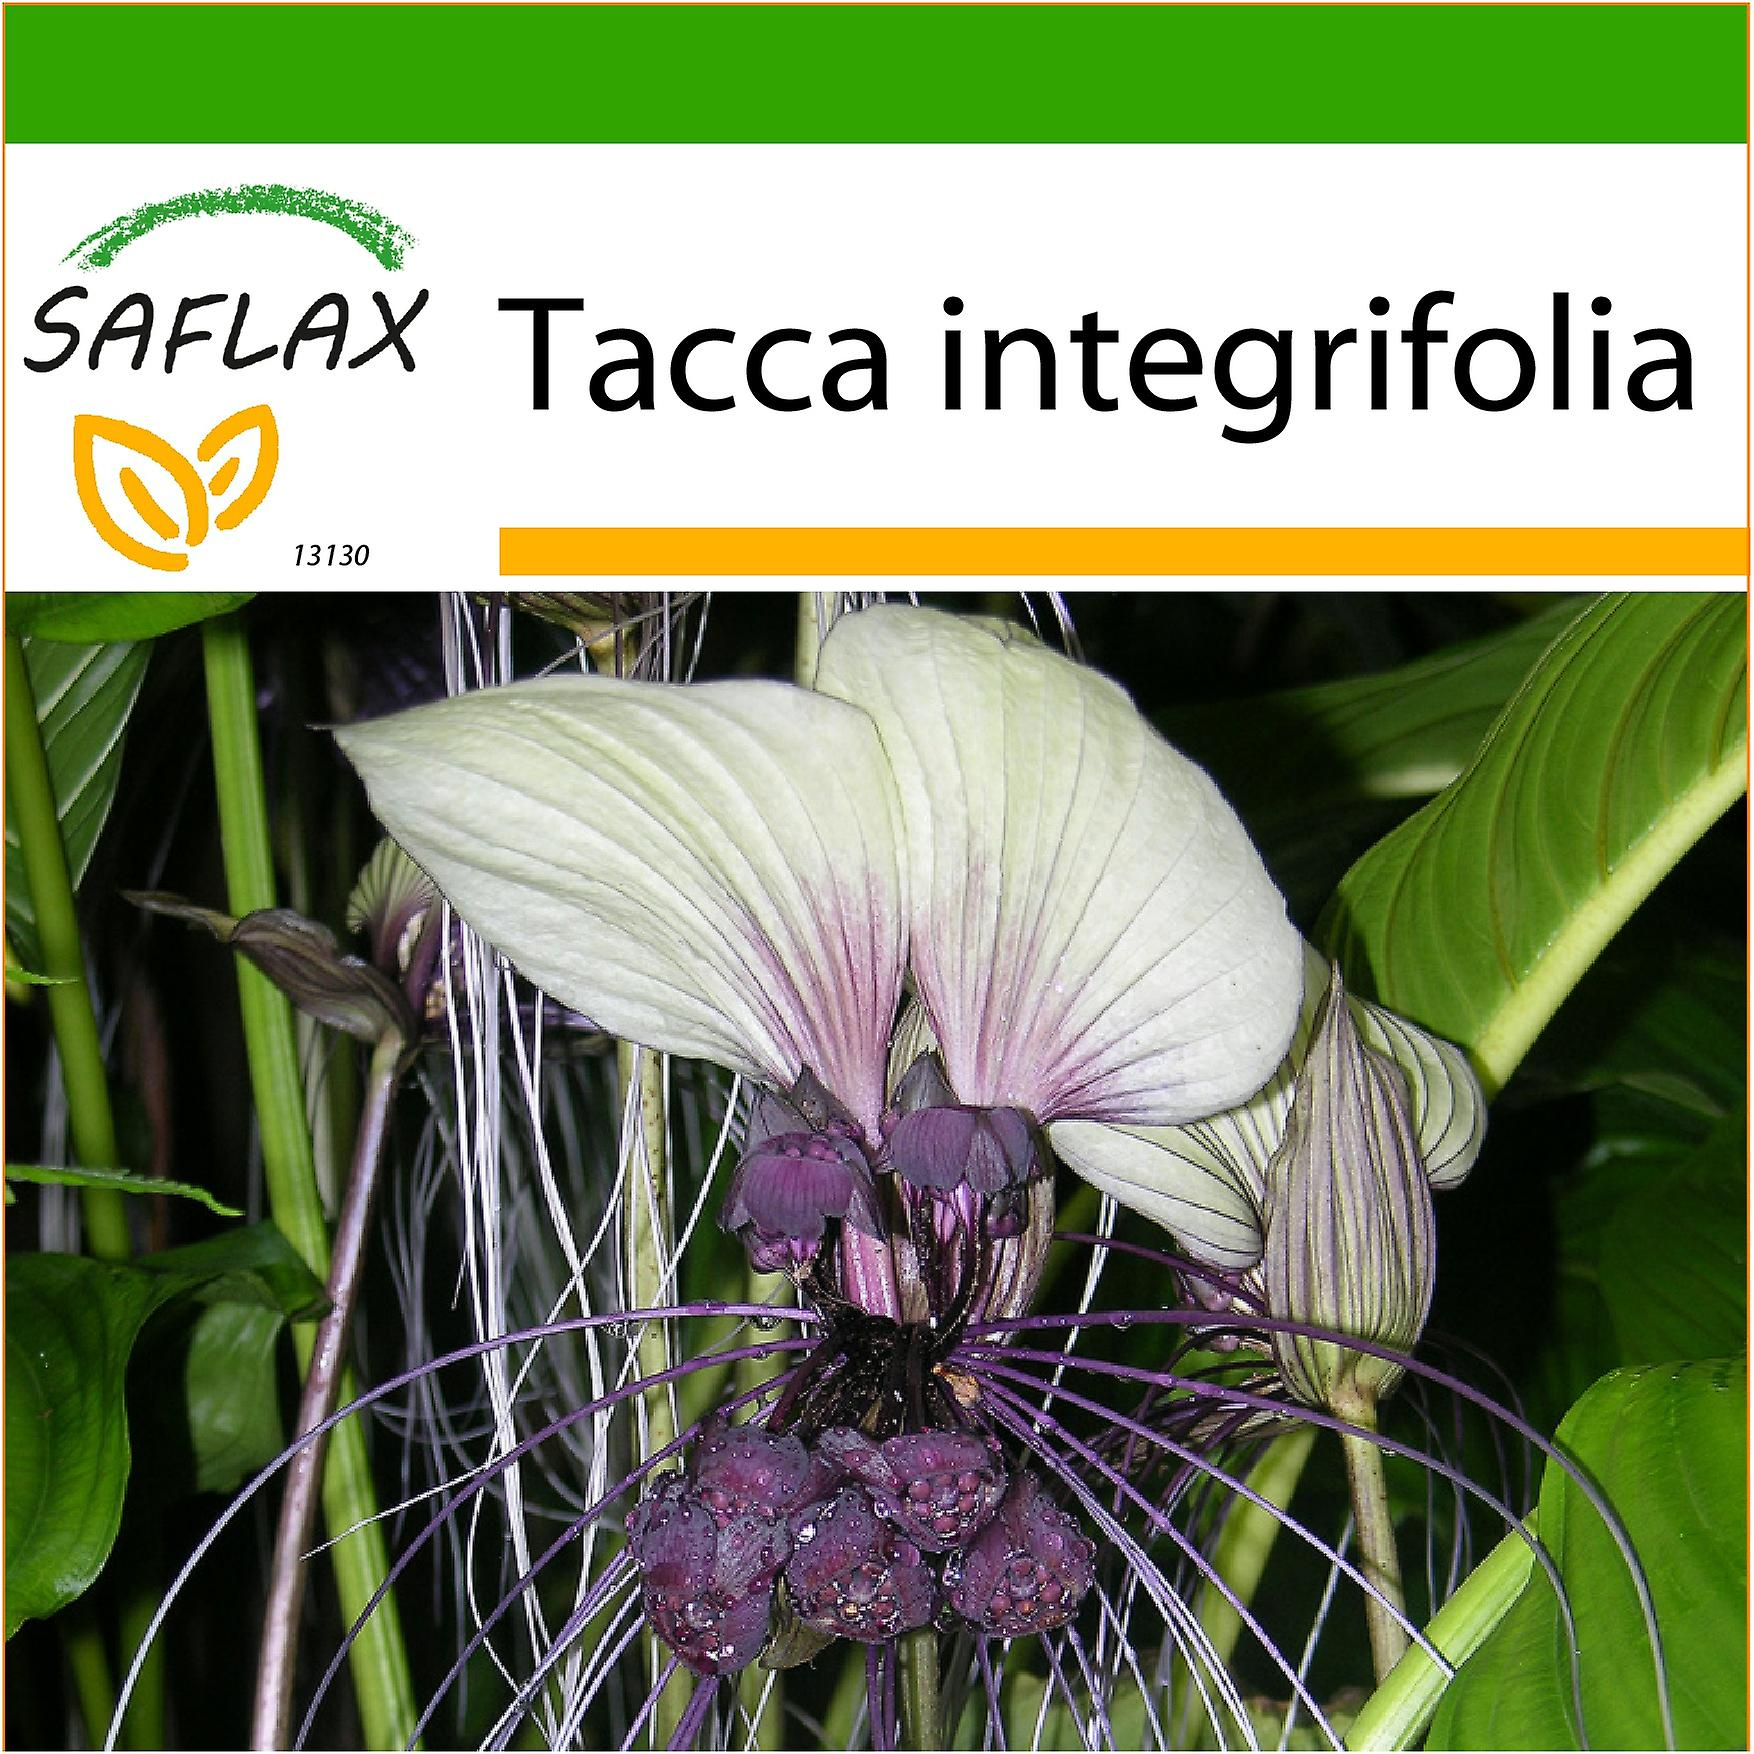 Saflax 10 seeds with soil white bat flower plante chauve saflax 10 seeds with soil white bat flower plante chauve souris mightylinksfo